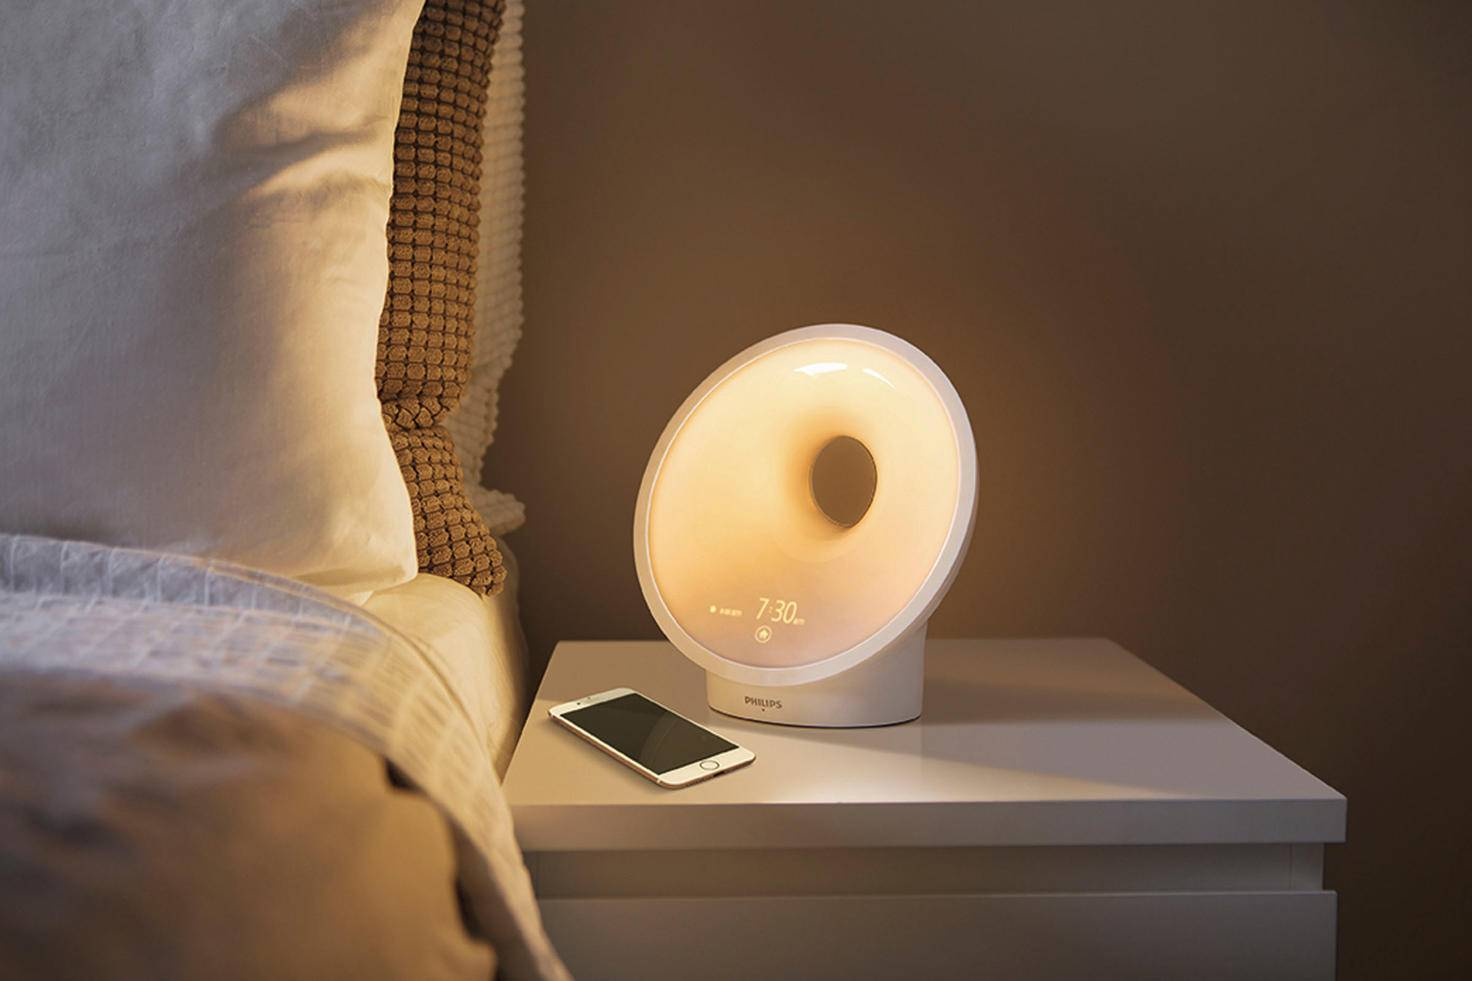 Philips Connected Sleep & Wake Up Light